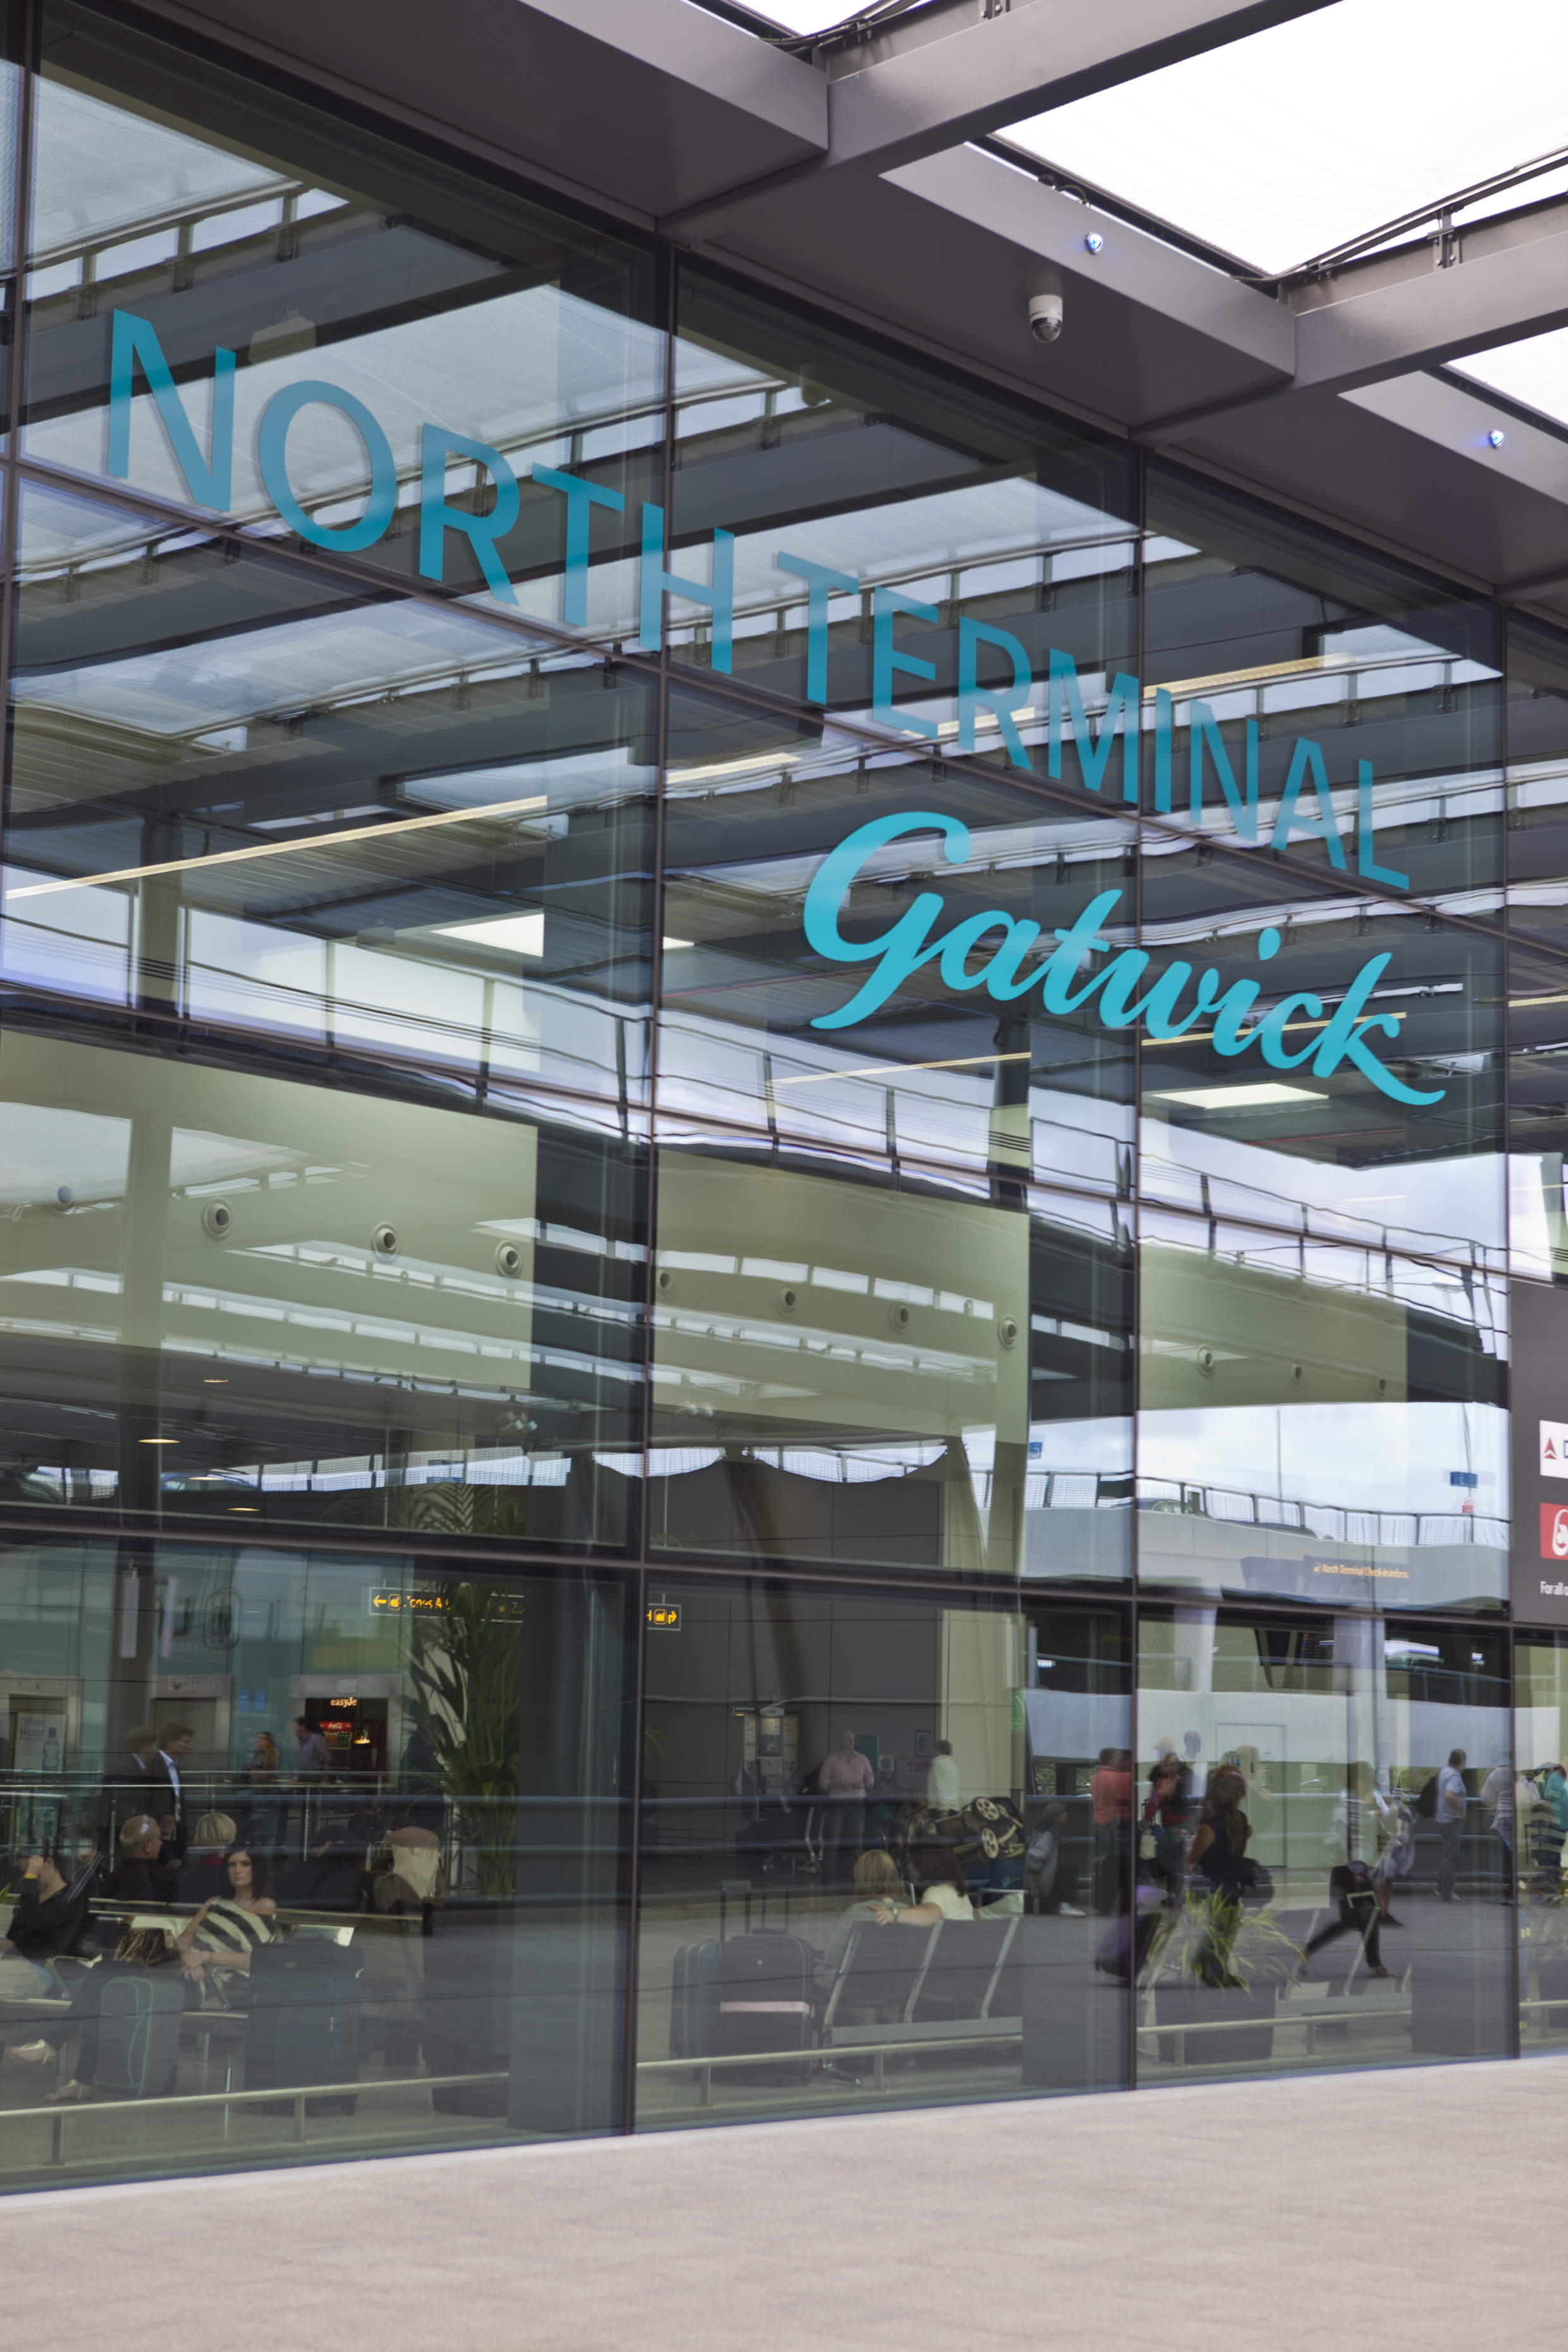 Where to find healthier options at gatwick airport north terminal gatwick north terminal gtw north 022 m4hsunfo